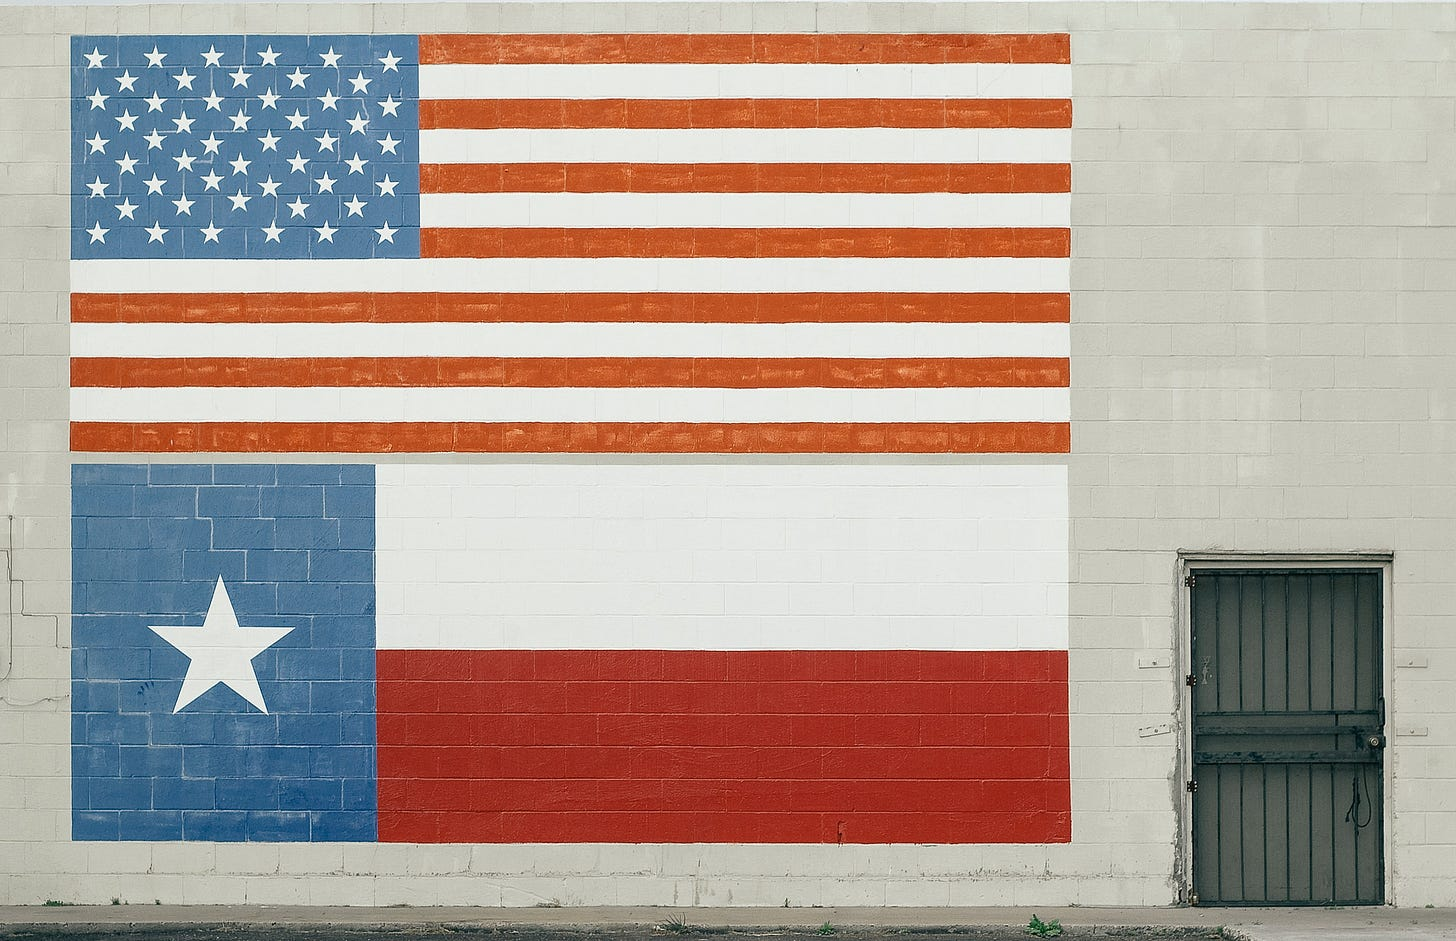 A mural of the American flag above a mural of the Texas flag, both pointed on the exterior of a white brick building. Matthew T. Rader / Unsplash